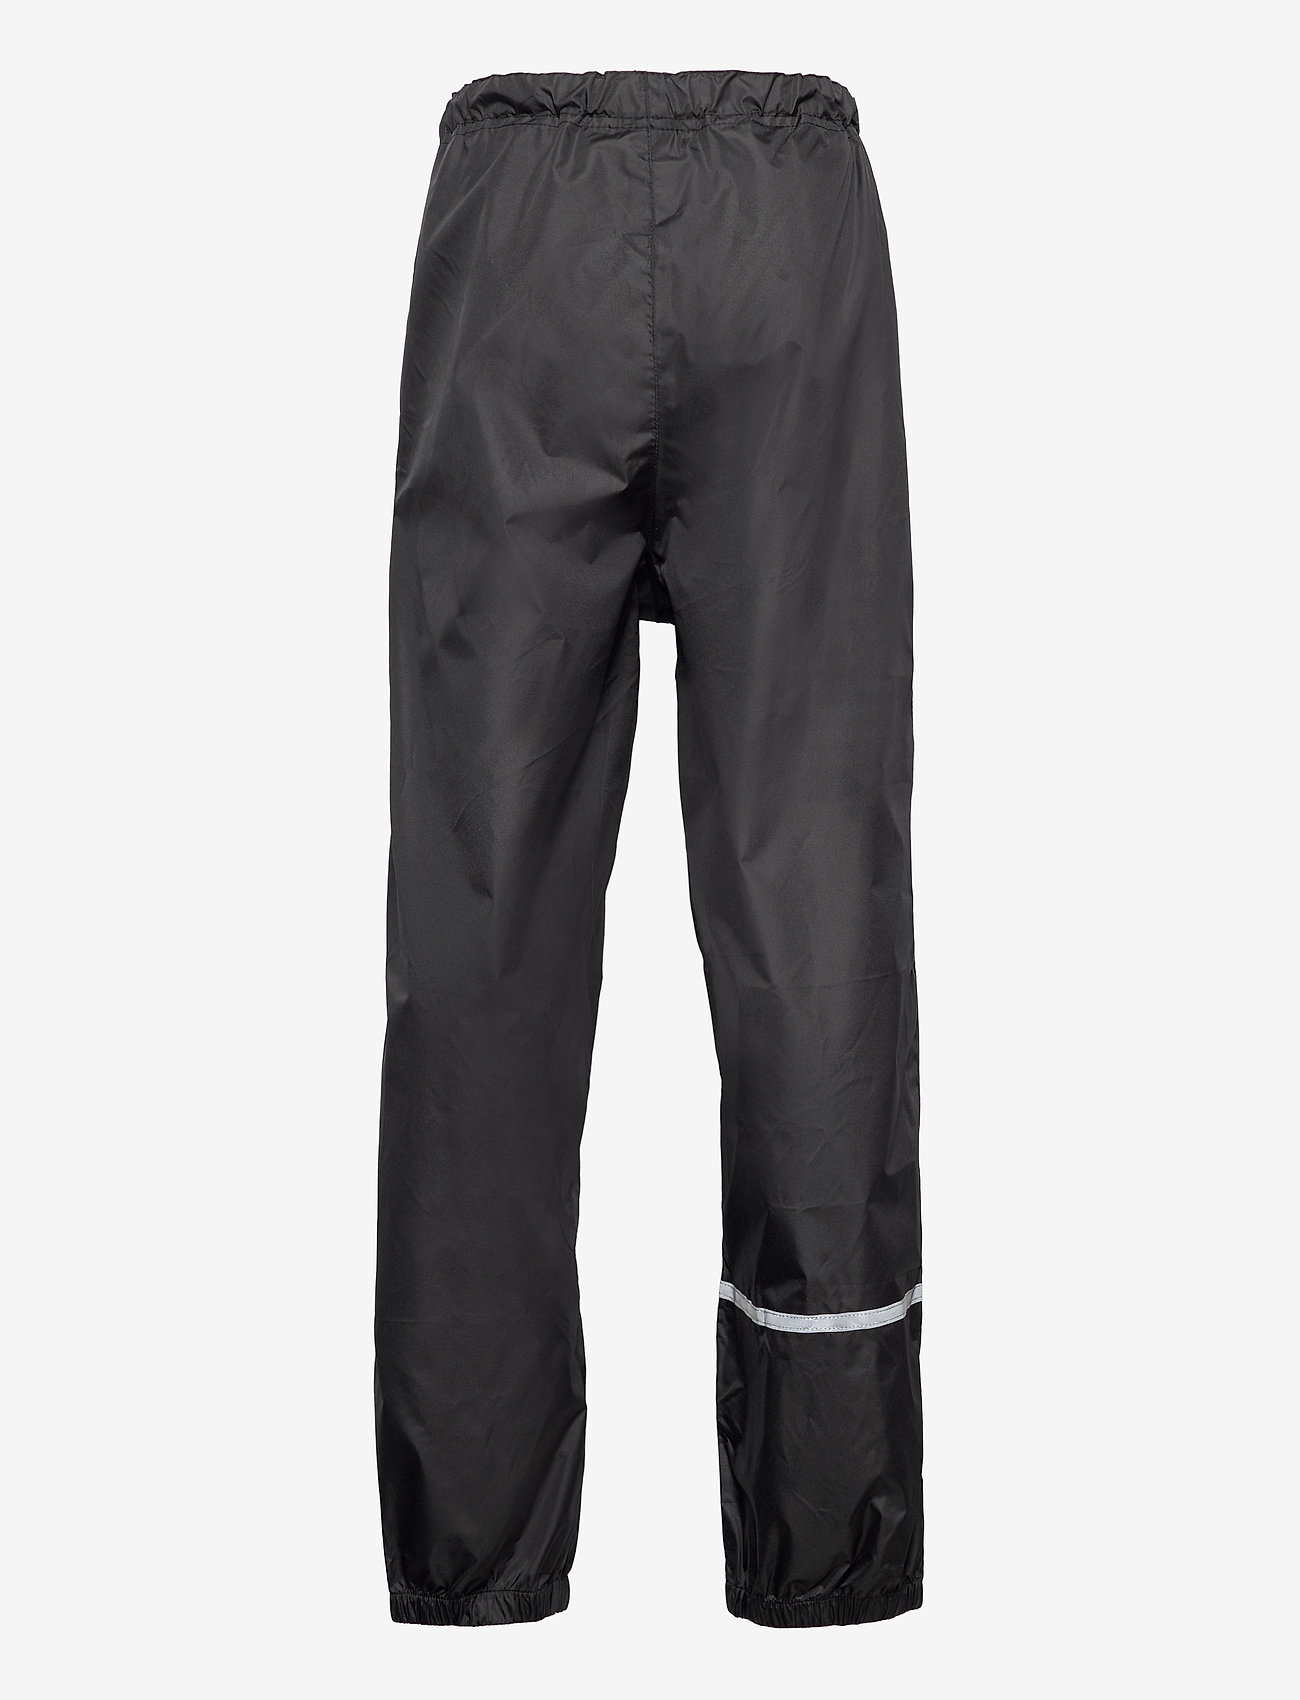 name it - NKNMIST PANT IN A BAG 1FO - hosen - black - 1